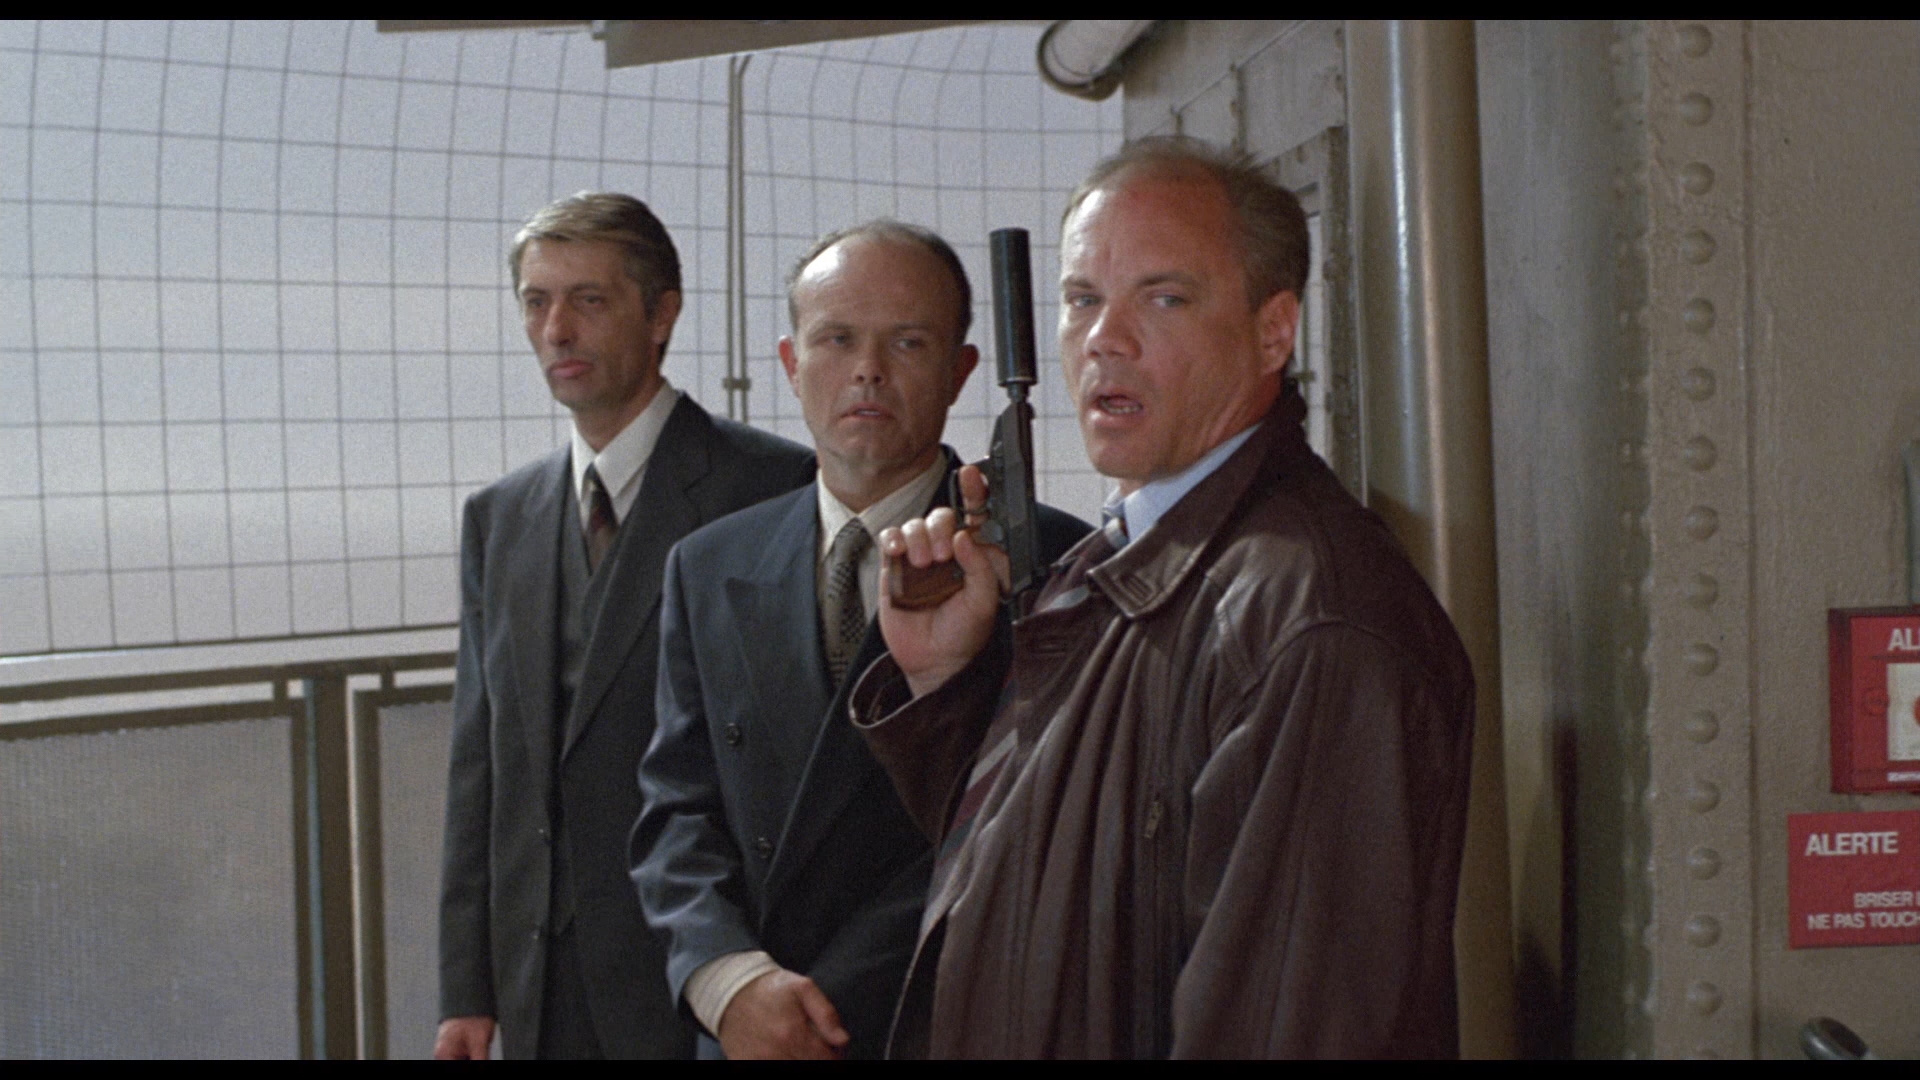 Kurtwood Smith and Daniel von Bargen in Company Business (1991)